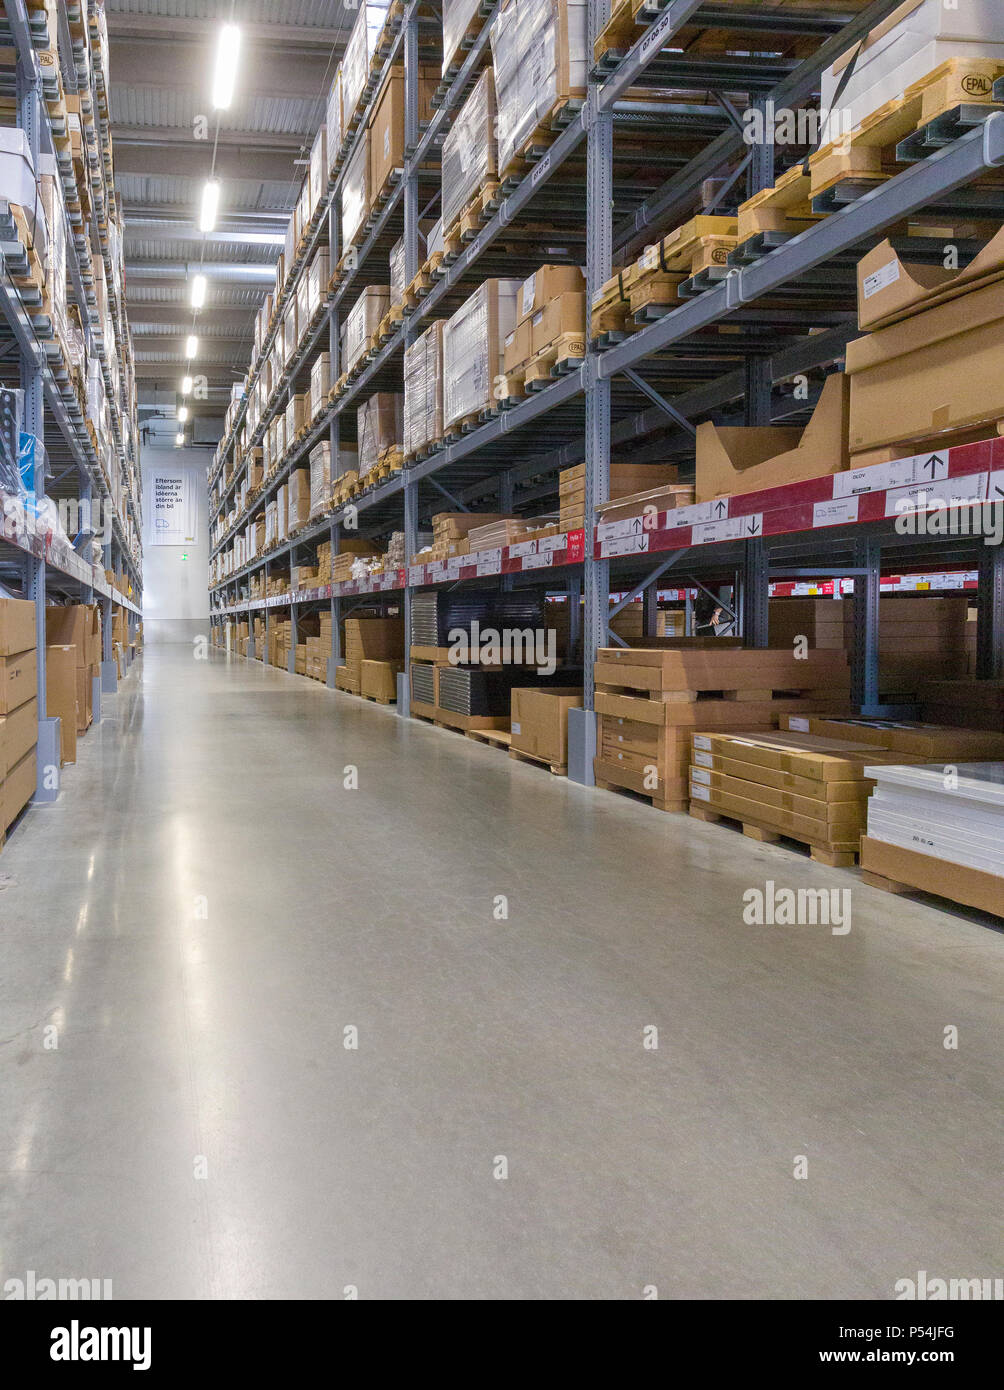 Interior view of aisles in a large warehouse stacked with cardboard boxes - Stock Image